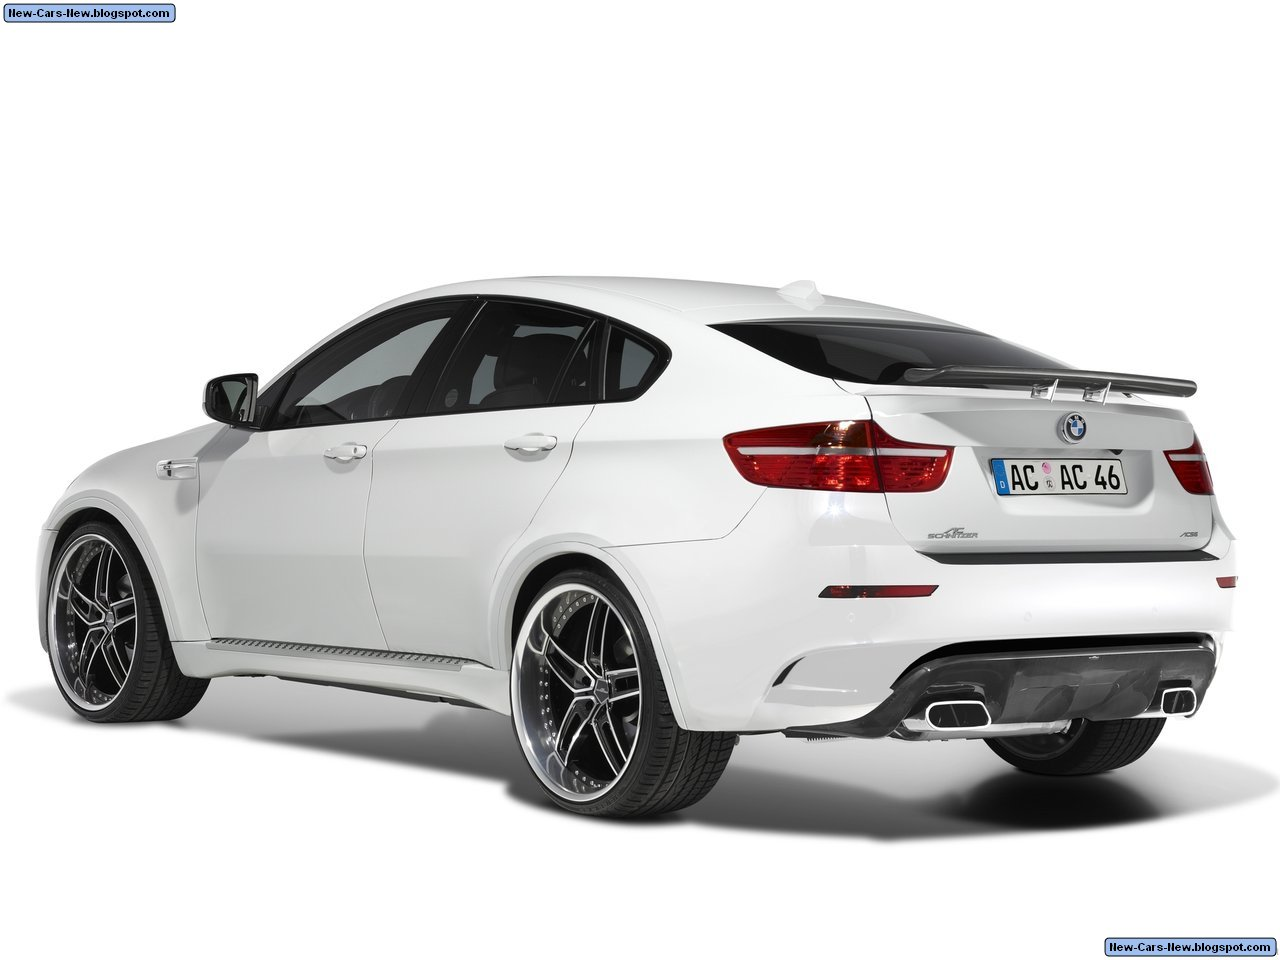 ac schnitzer bmw x6 m 2010 best car blog ac schnitzer bmw x6 m 2010. Black Bedroom Furniture Sets. Home Design Ideas